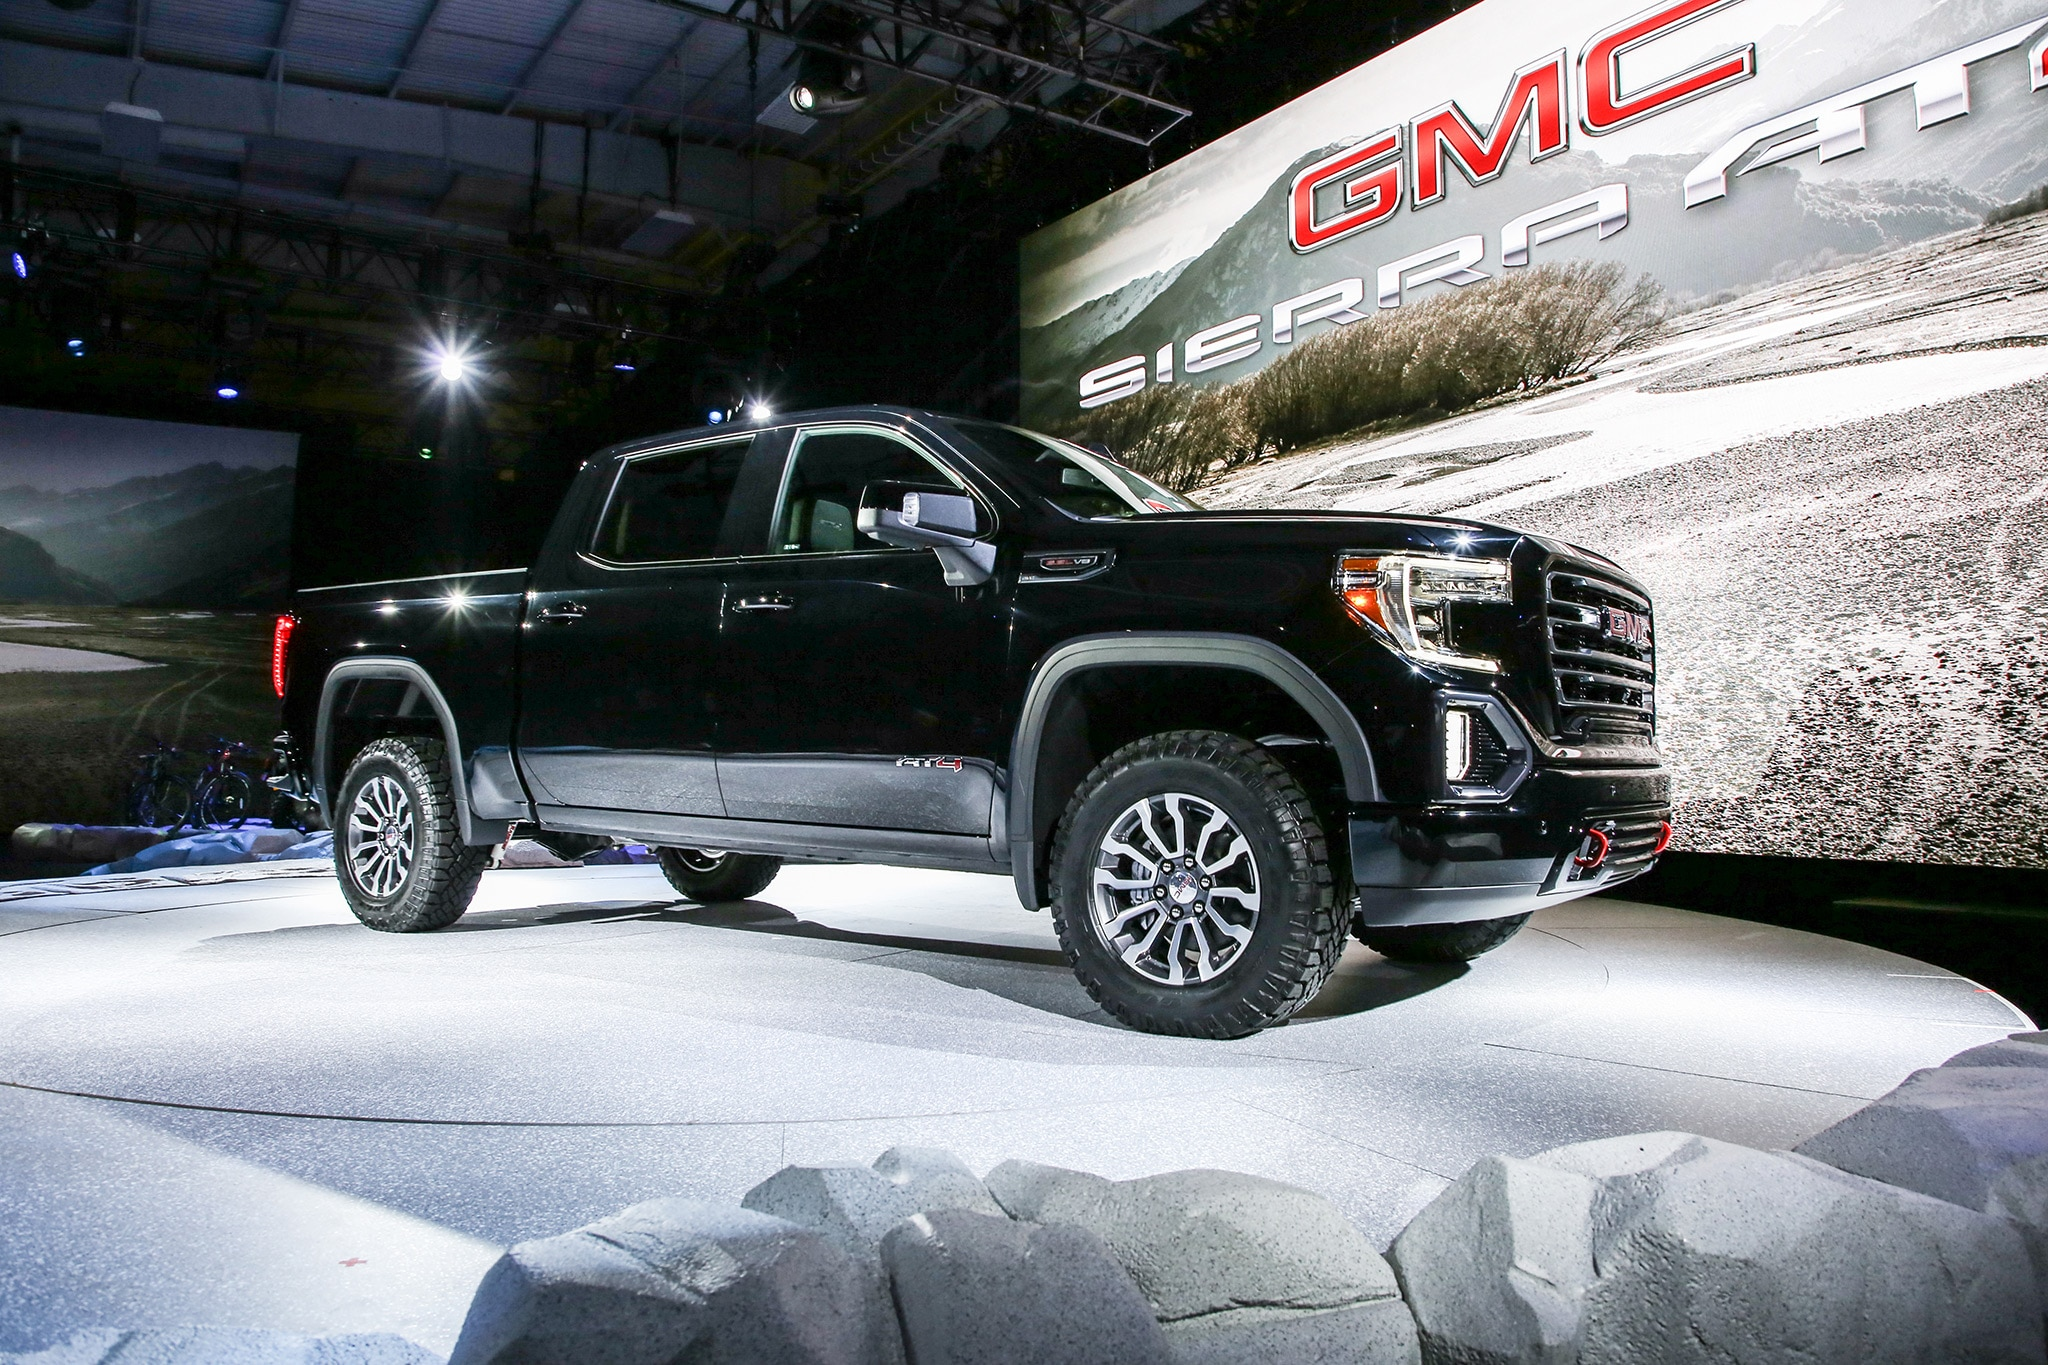 show gets truck road auto magazine more off chops gmc sierra new news york automobile